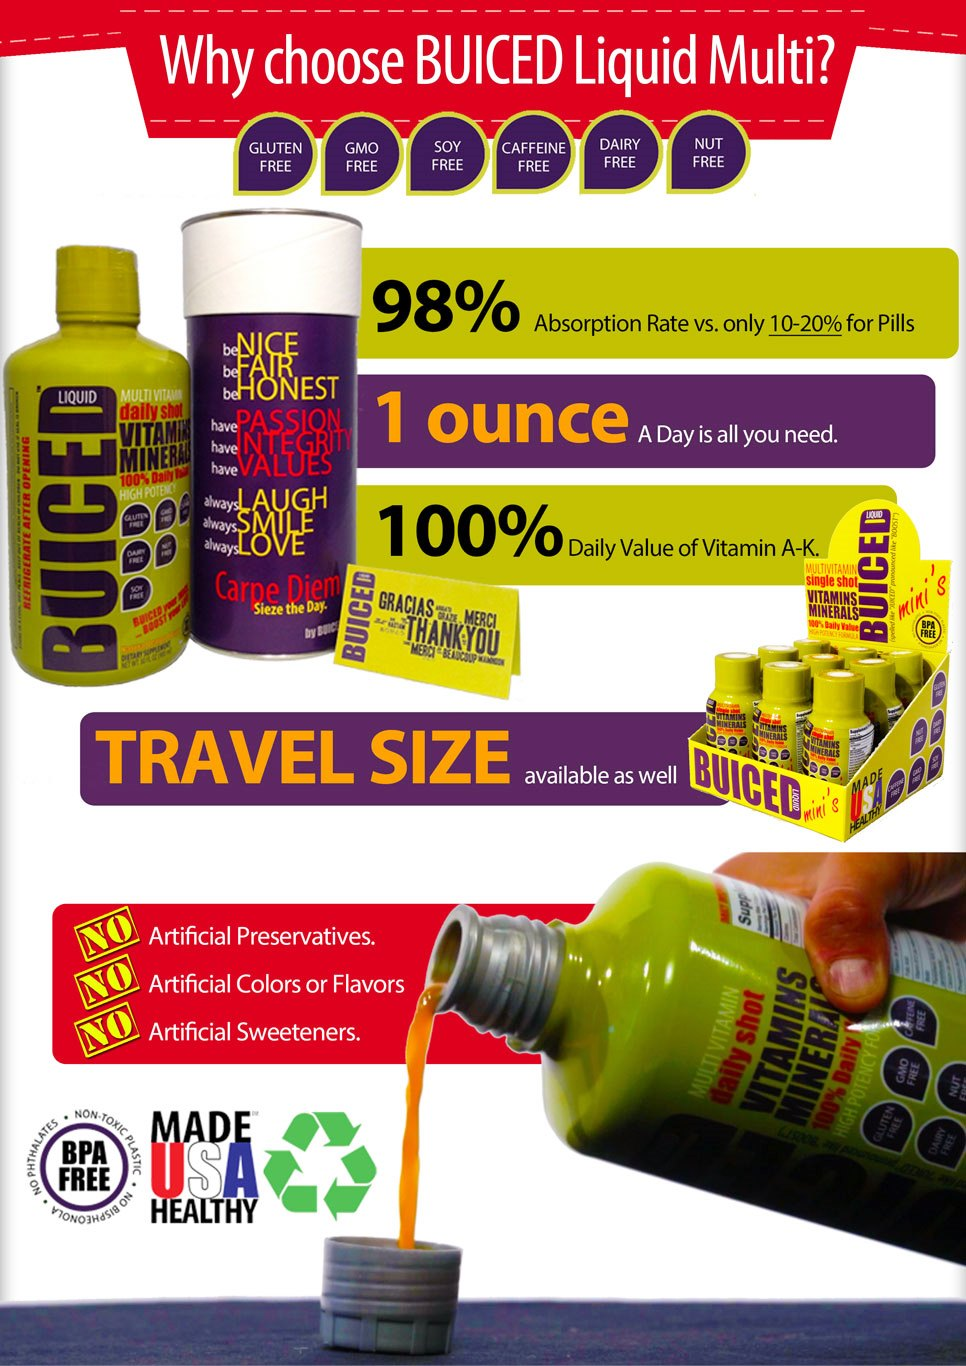 Meet BUICED Liquid Multivitamin via our Infographic